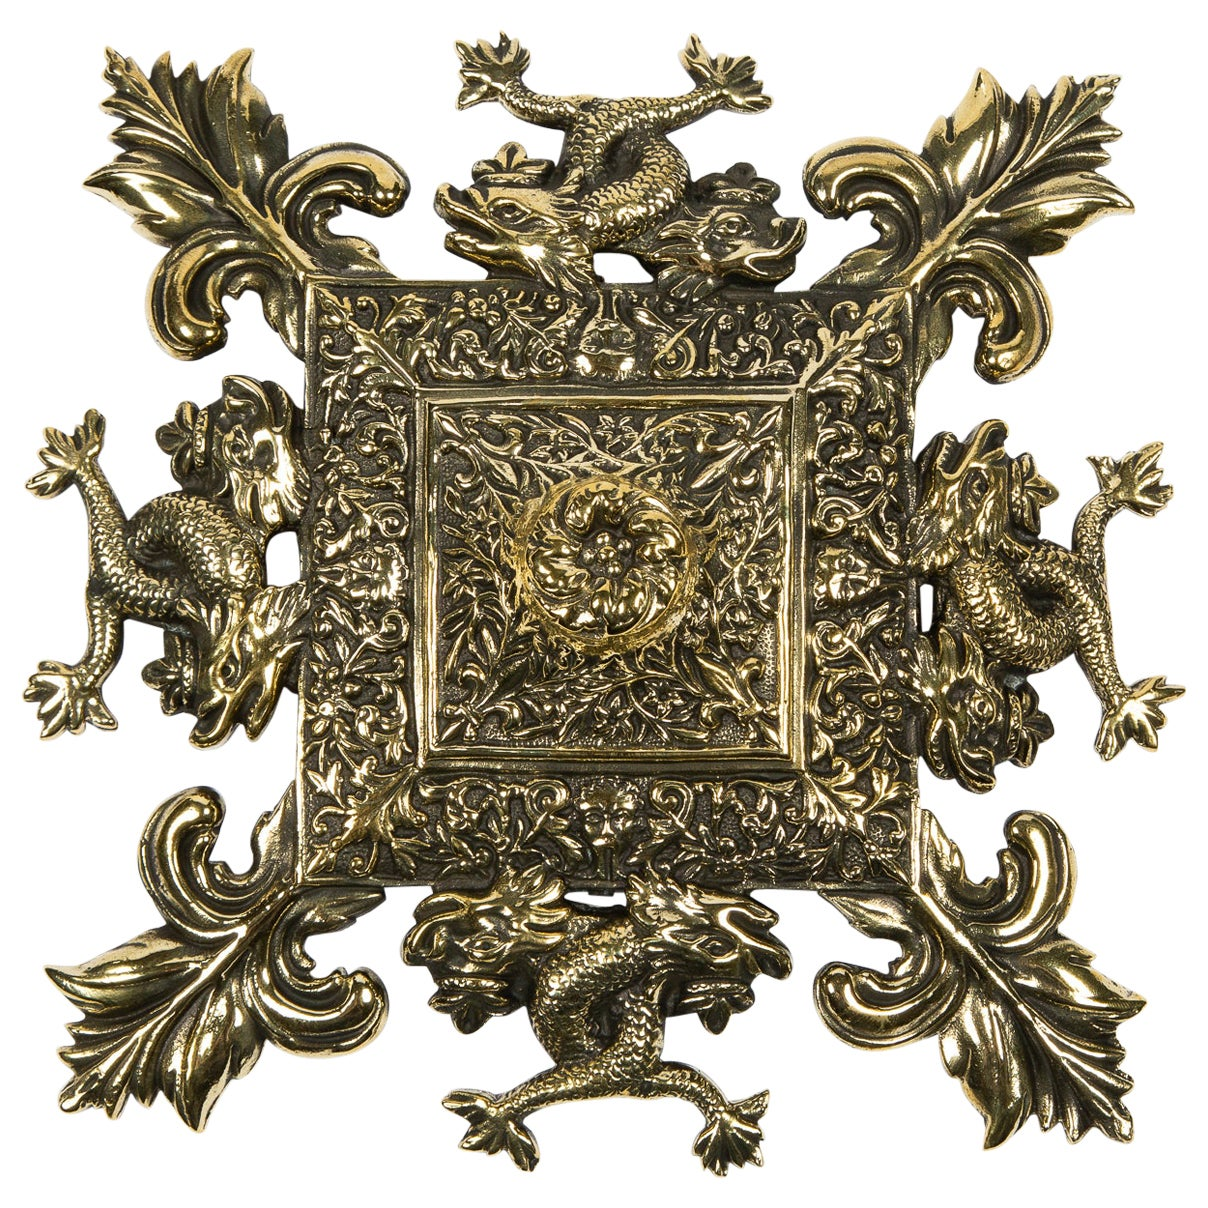 Brass Wall Plaque Decorated with Intertwined Sea Serpents and Fleur-de-Lis